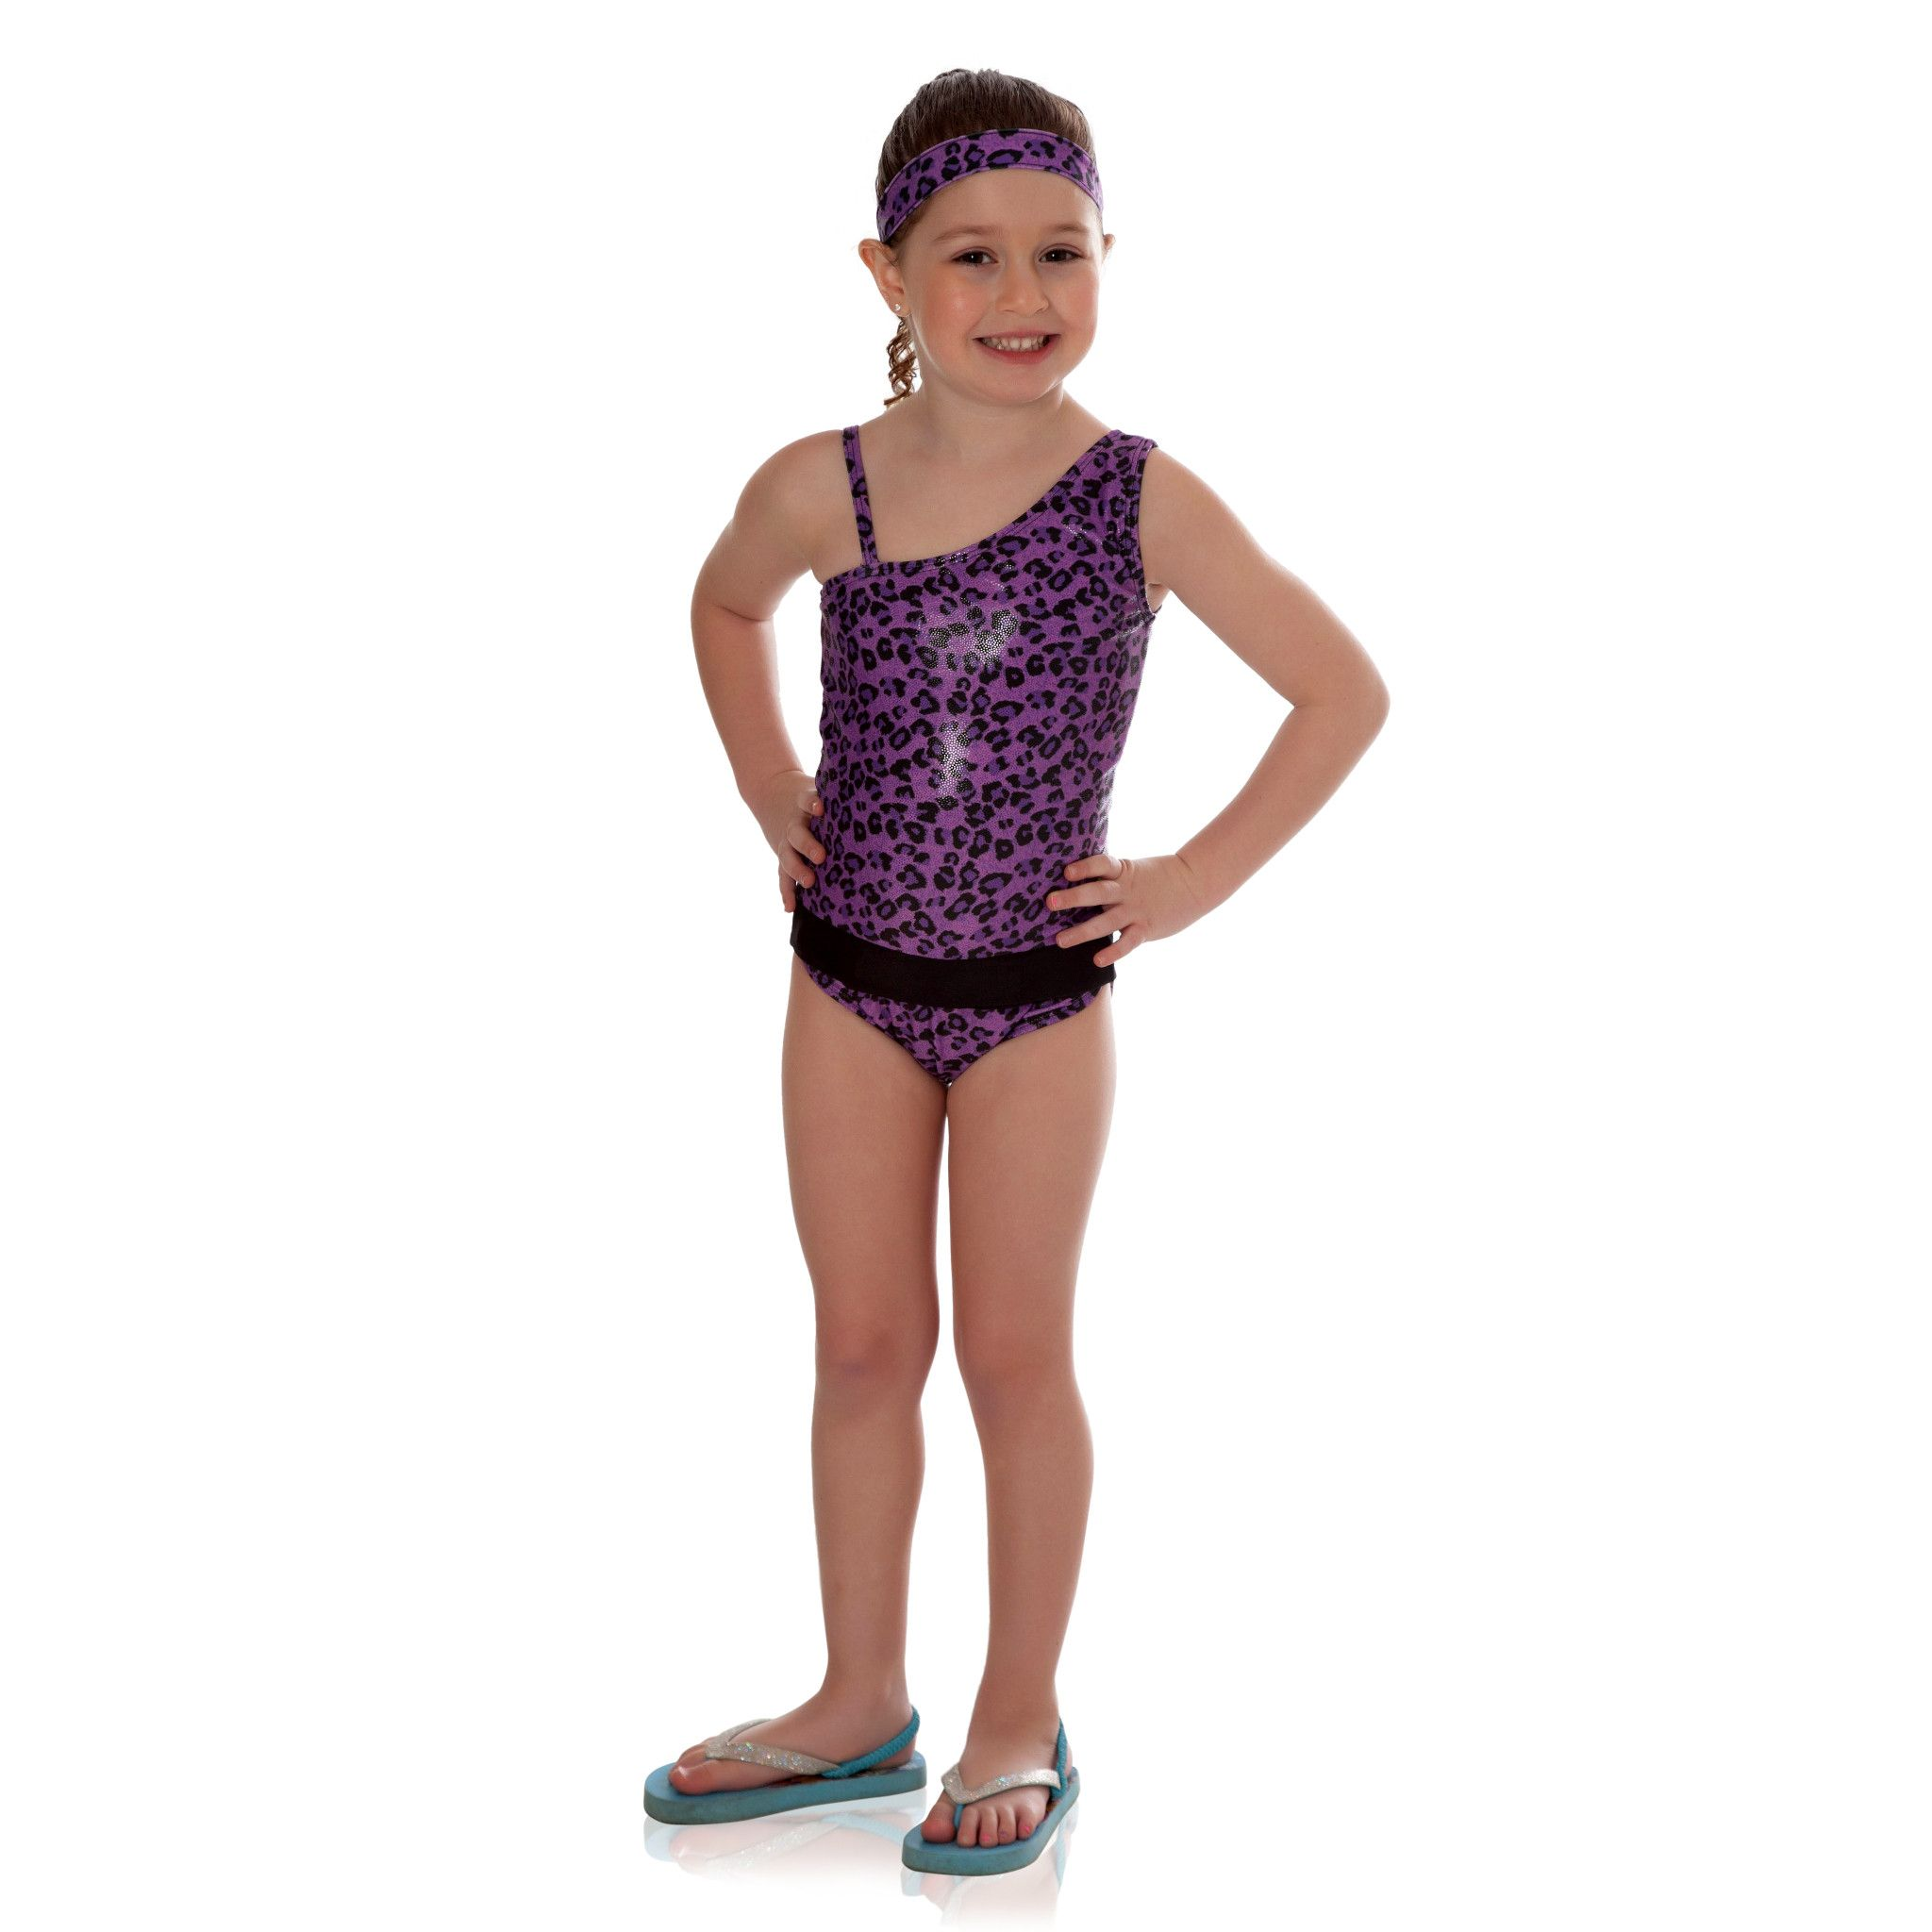 Purple Cheetah ICED with Black One-Shoulder Bathing Suit